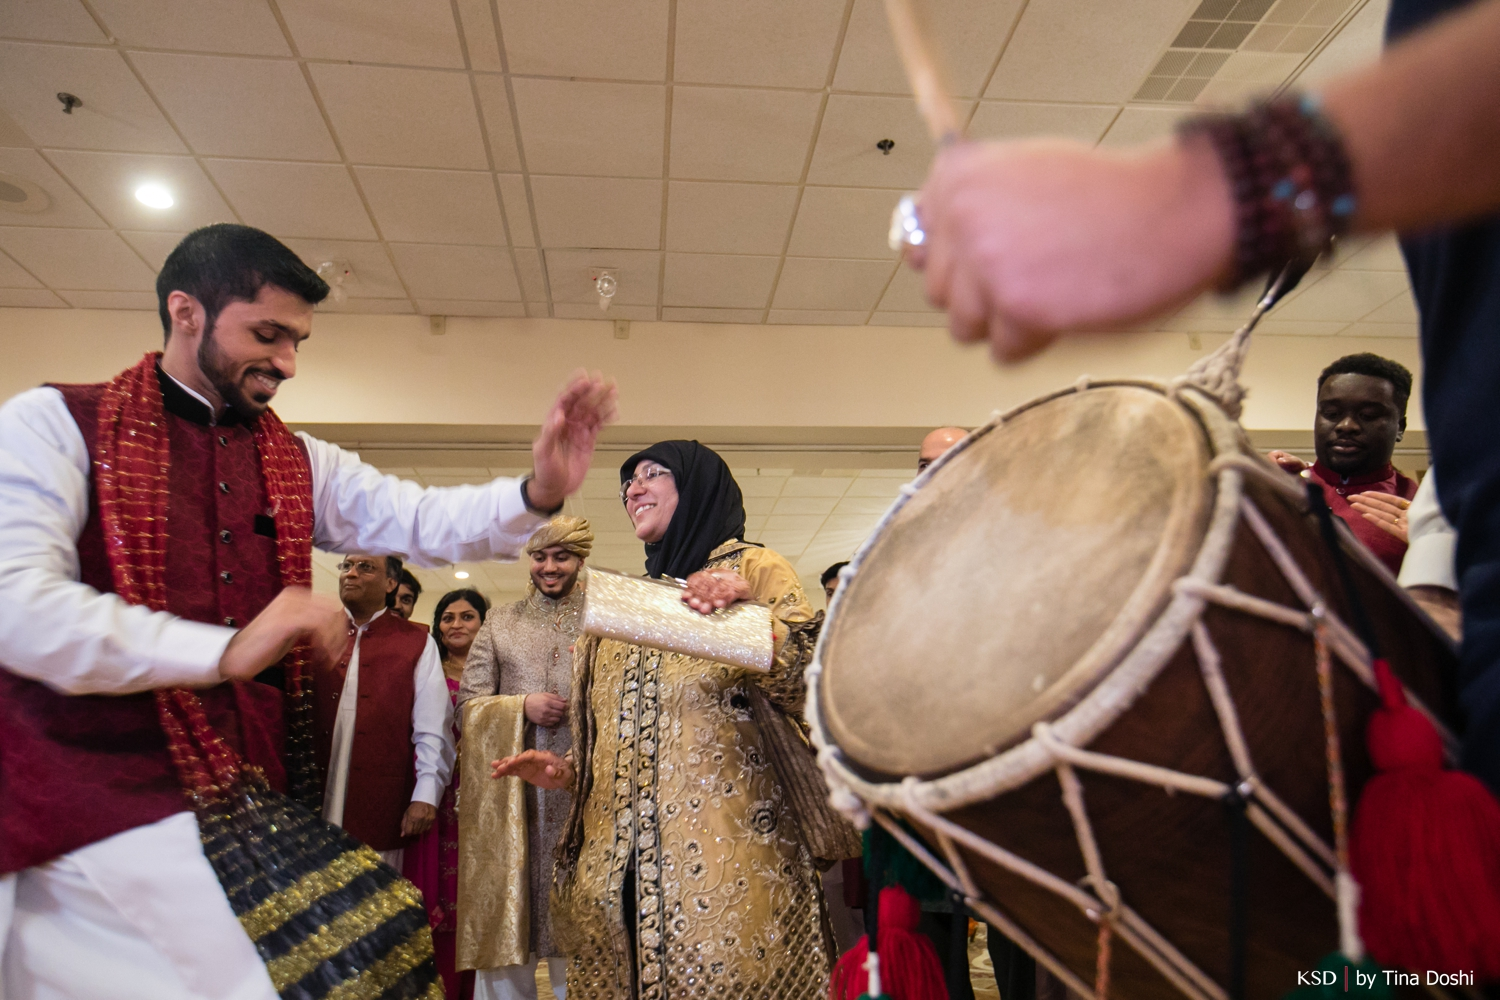 nj_south_asian_wedding_0040